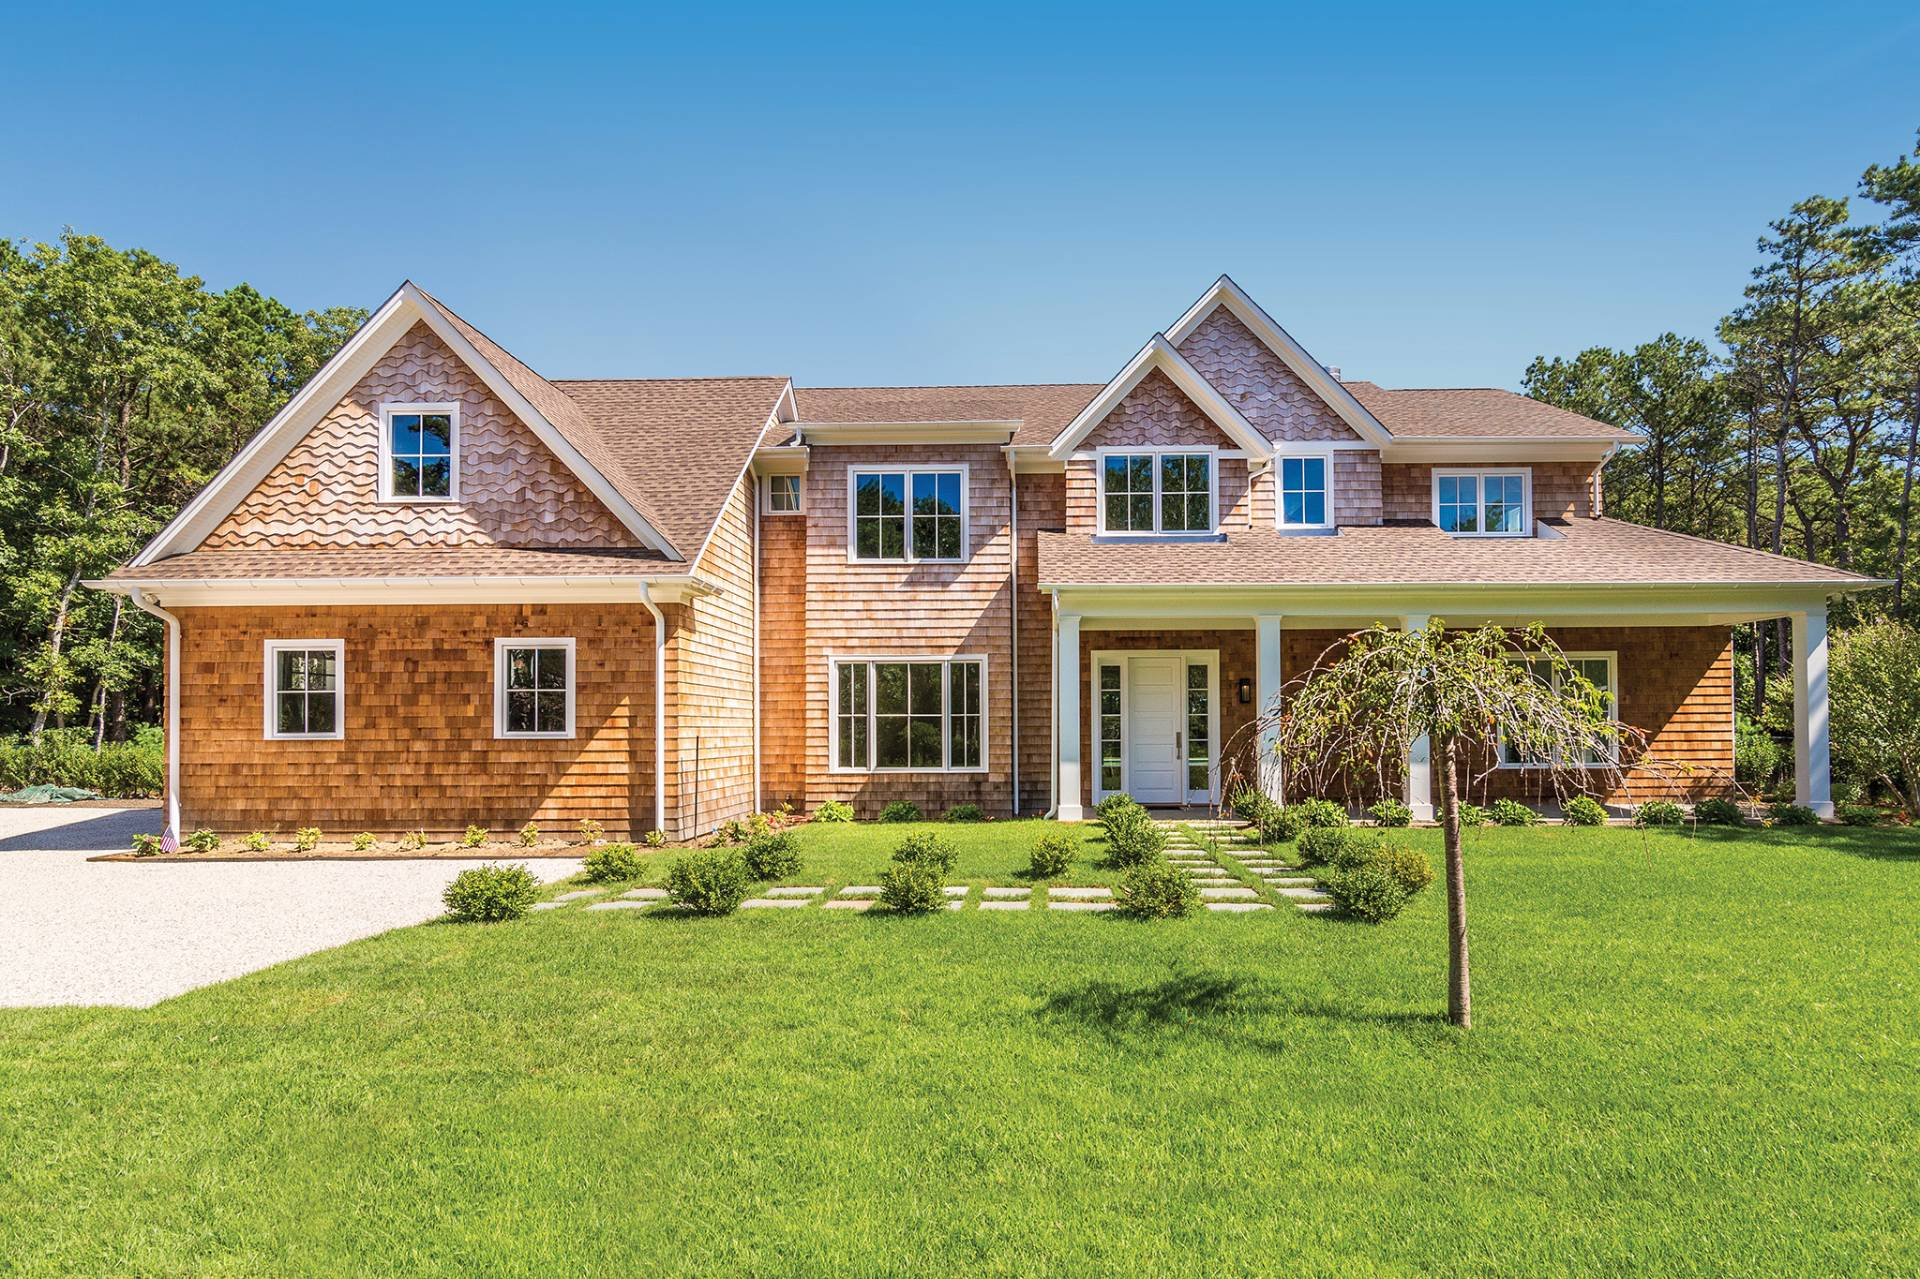 Additional photo for property listing at Stunning New Construction In Wainscott 12 Sandown Court,  Wainscott, New York